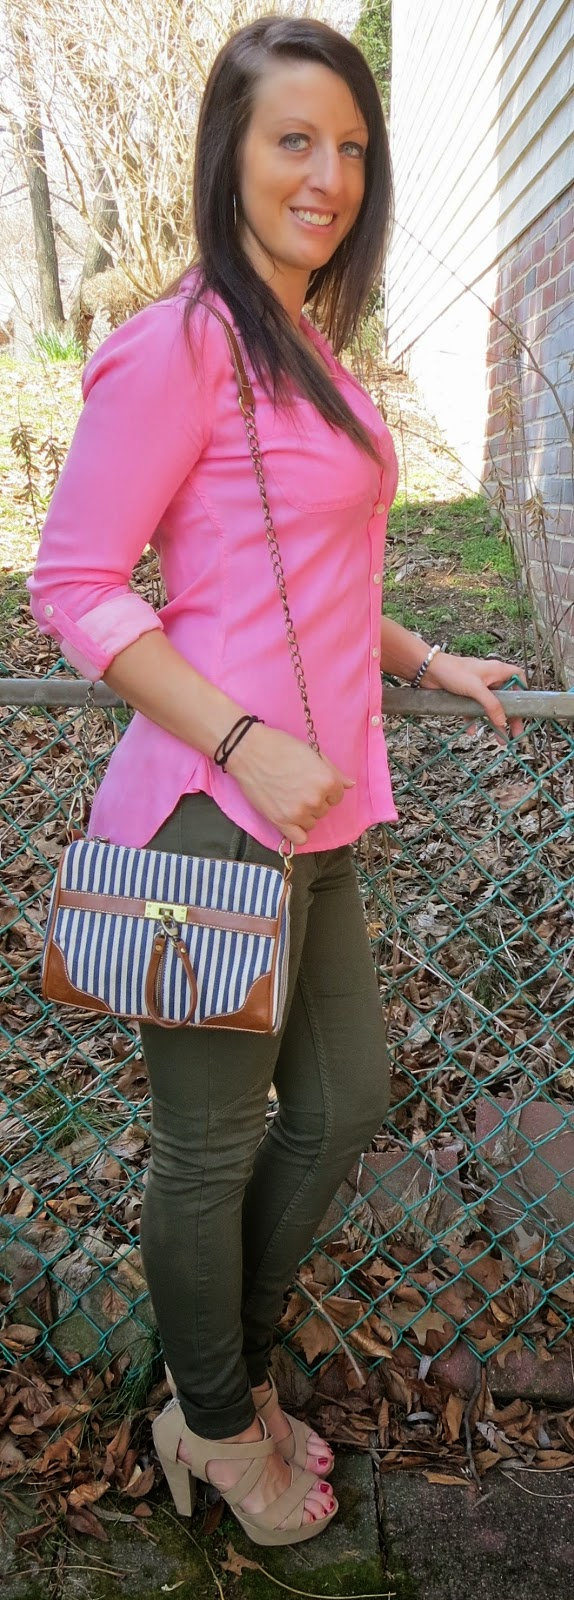 striped bag, nila anthony, target, olive pants, zara, pink blouse, fashion, outfit